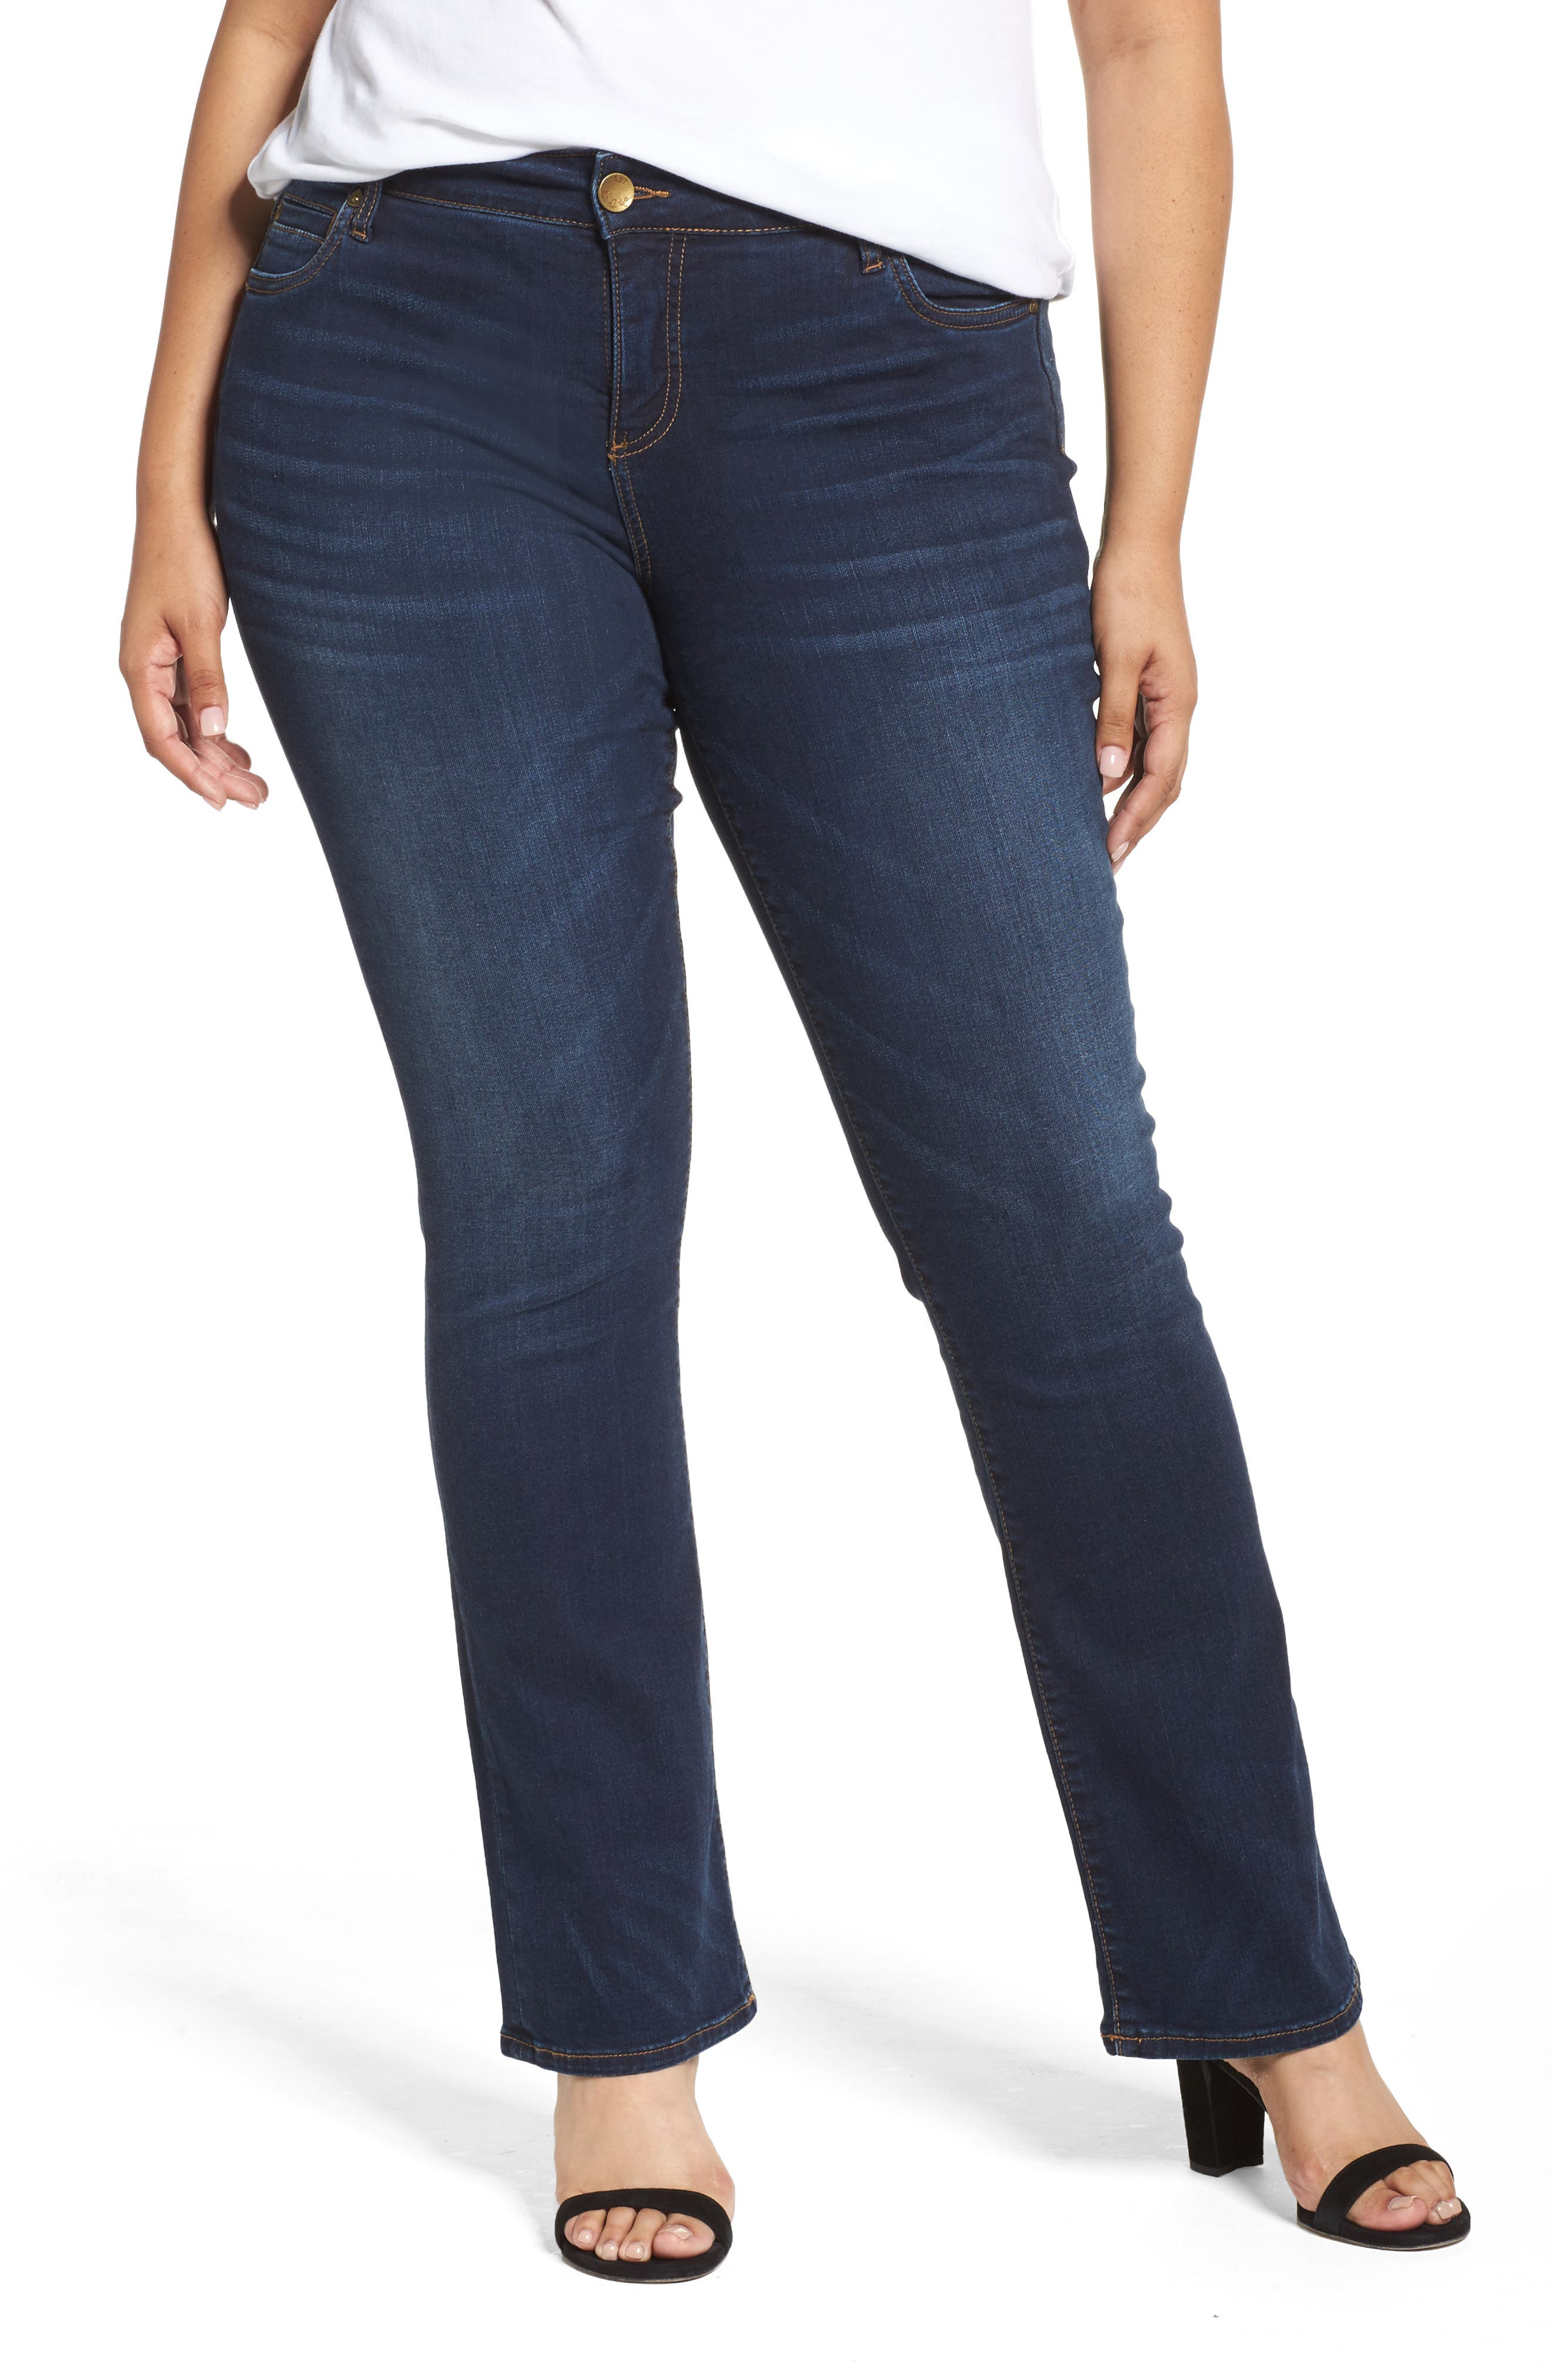 Alternate Image 1 Selected - KUT from the Kloth Natalie High Waist Bootcut Jeans (Closeness) (Plus Size)